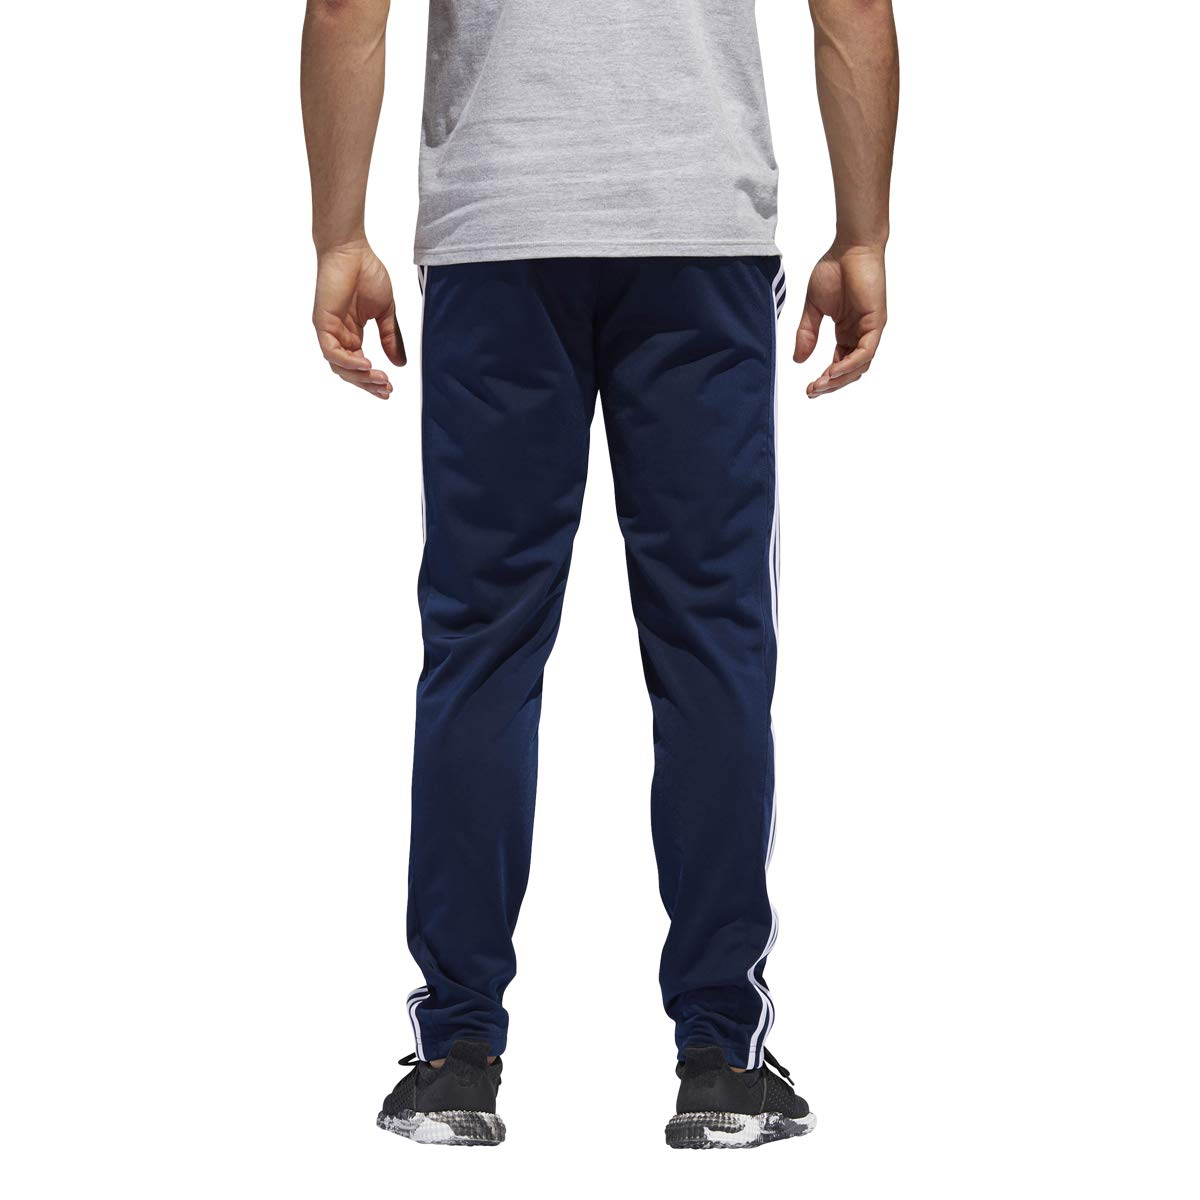 adidas Men's Essential Track Pants Gameday Pant (Navy/White, X-Large)